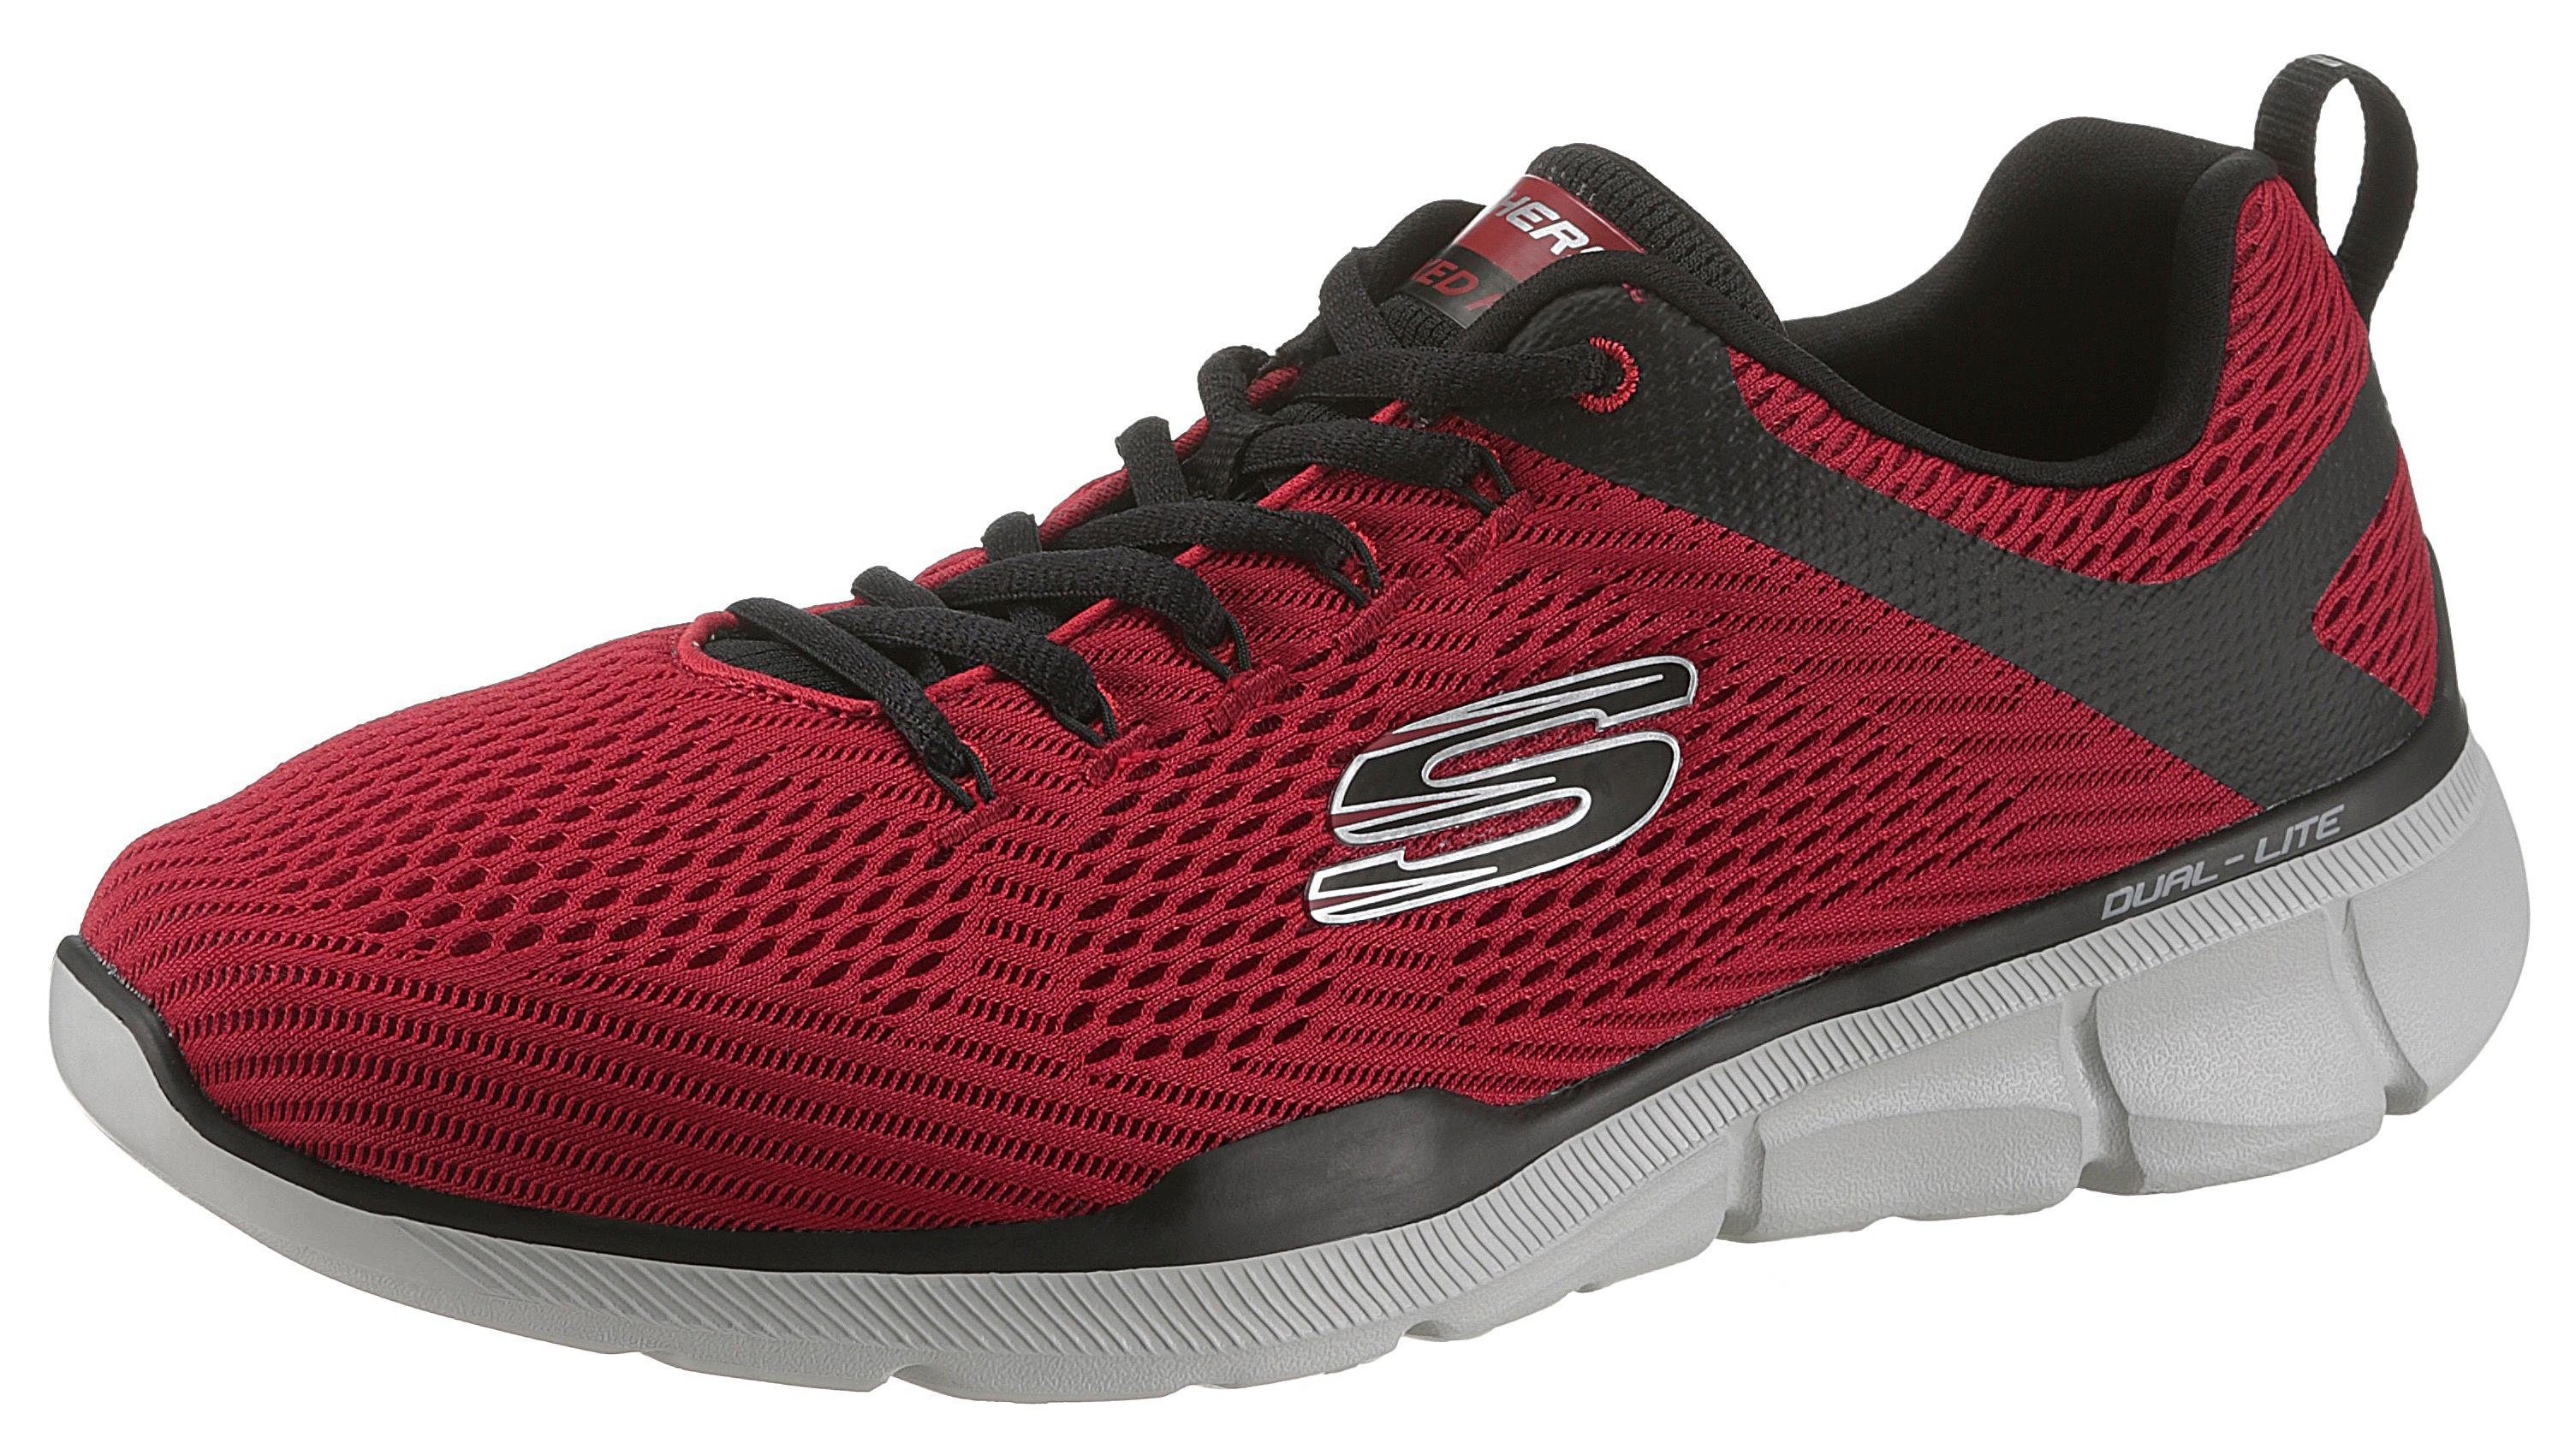 Skechers Relaxed Fit Equalizer 3.0 Sneaker   YouTube